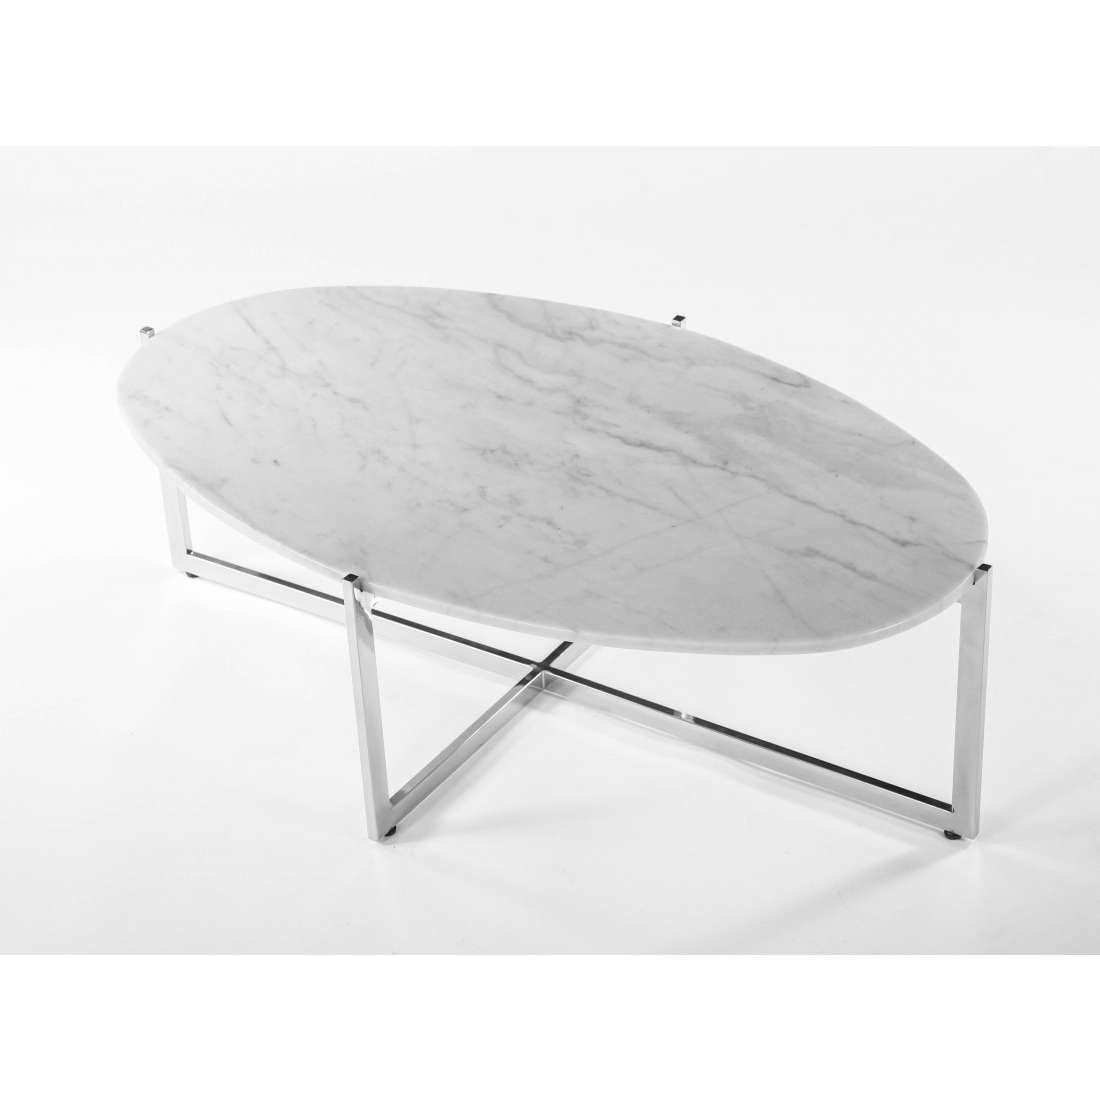 Mid Century Modern Reproduction Cantilevered Marble Intended For Recent Black And Grey Marble Coffee Tables (View 14 of 20)